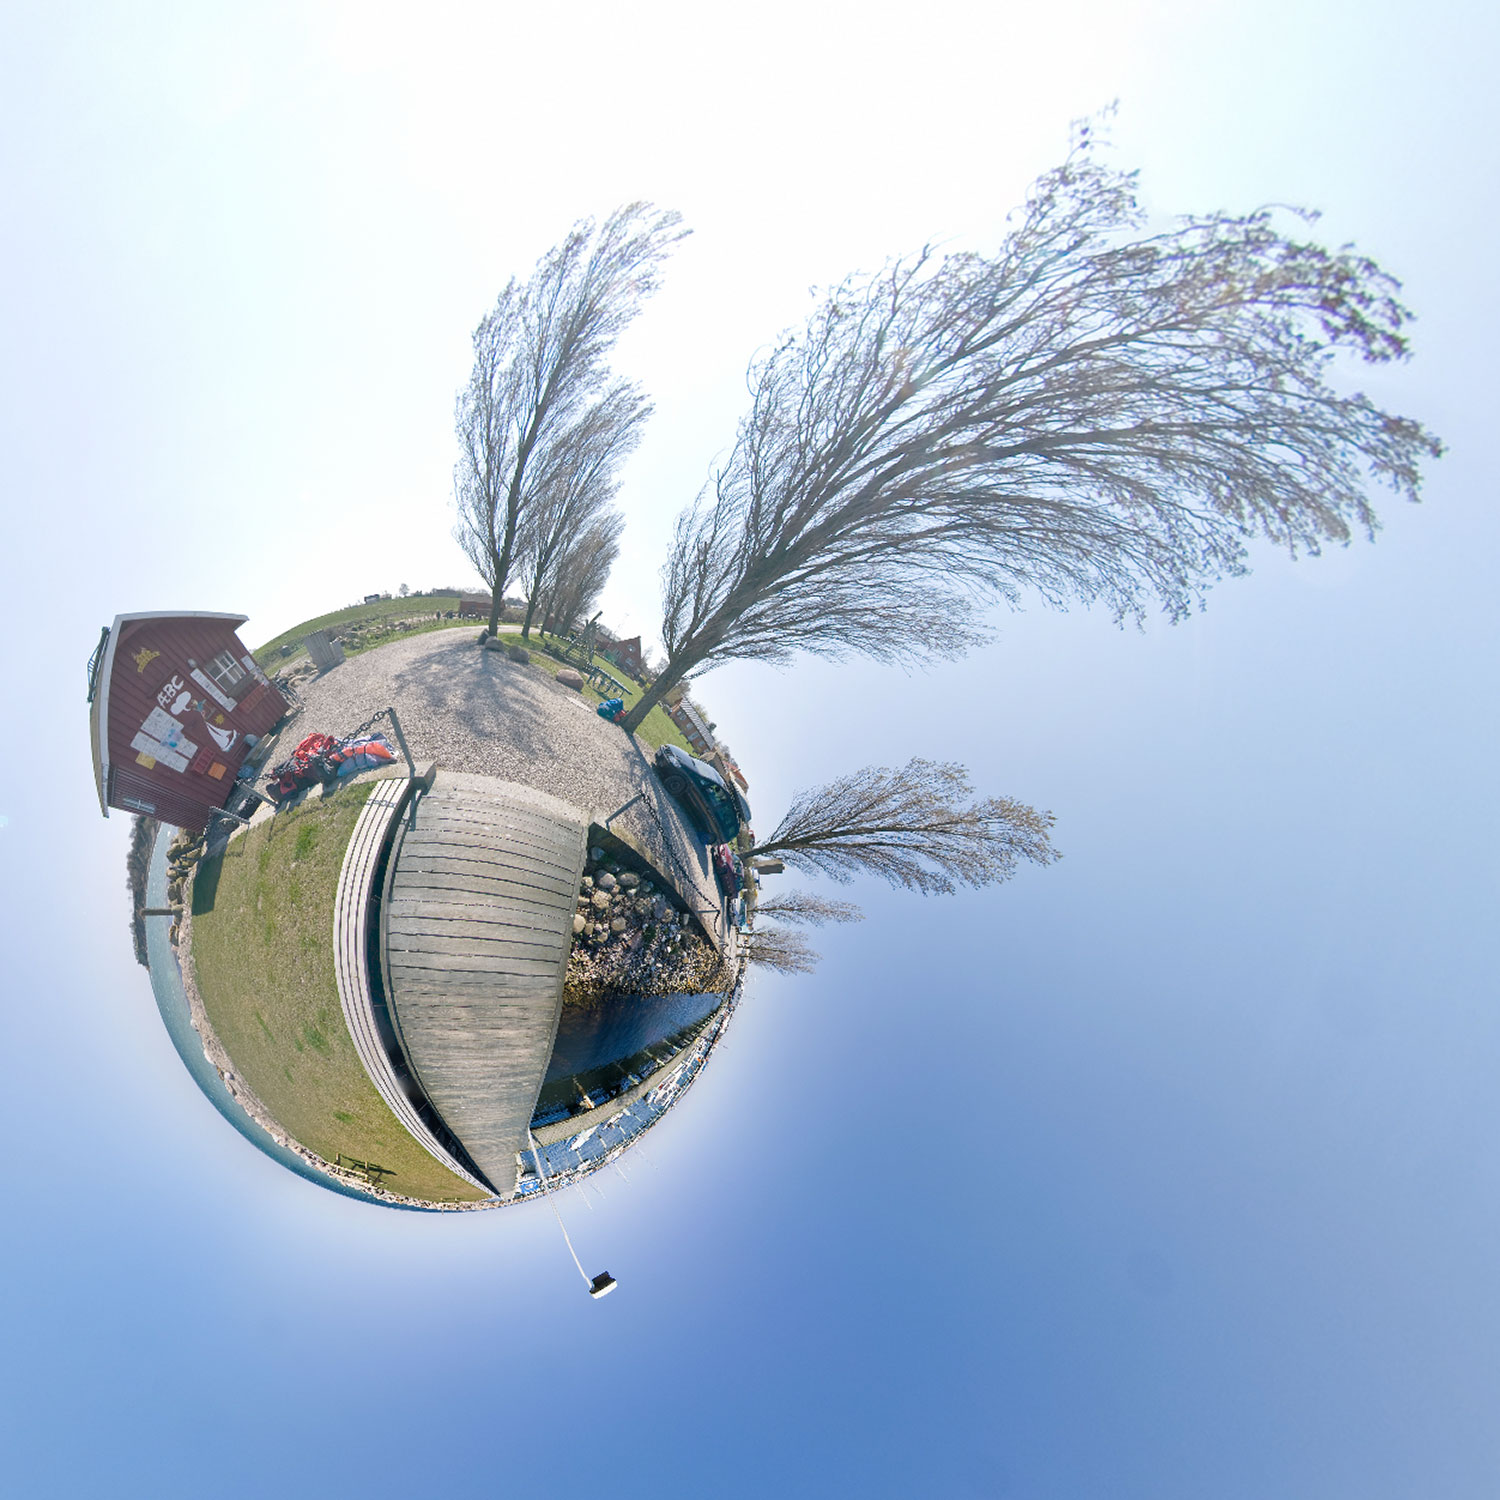 Panorama 033 - Little Planet